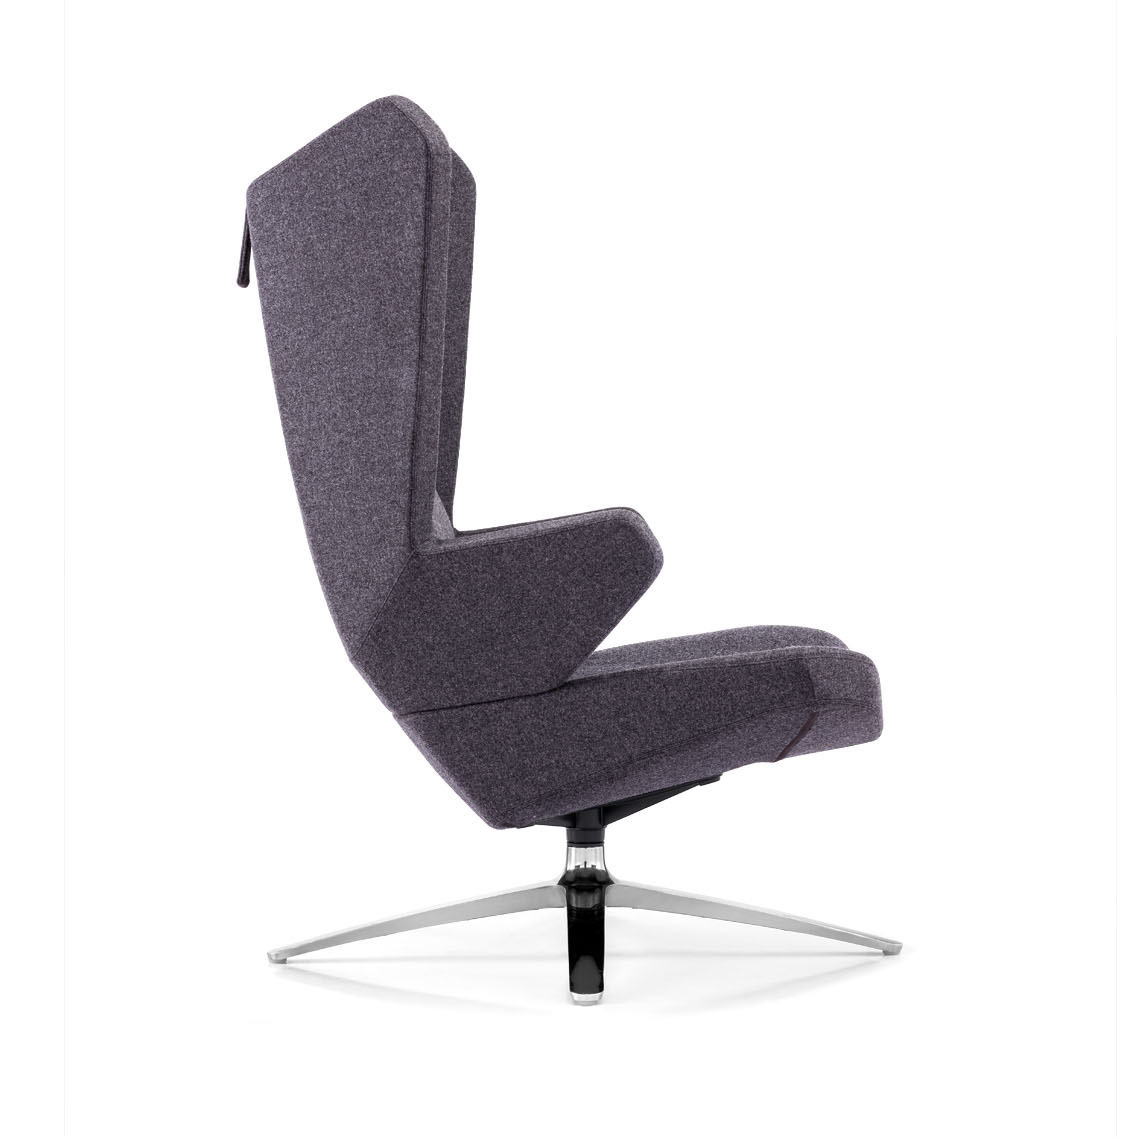 product-Modern Lounge Hotel Leisure Chairs With Ottoman F1828-Furicco-img-1